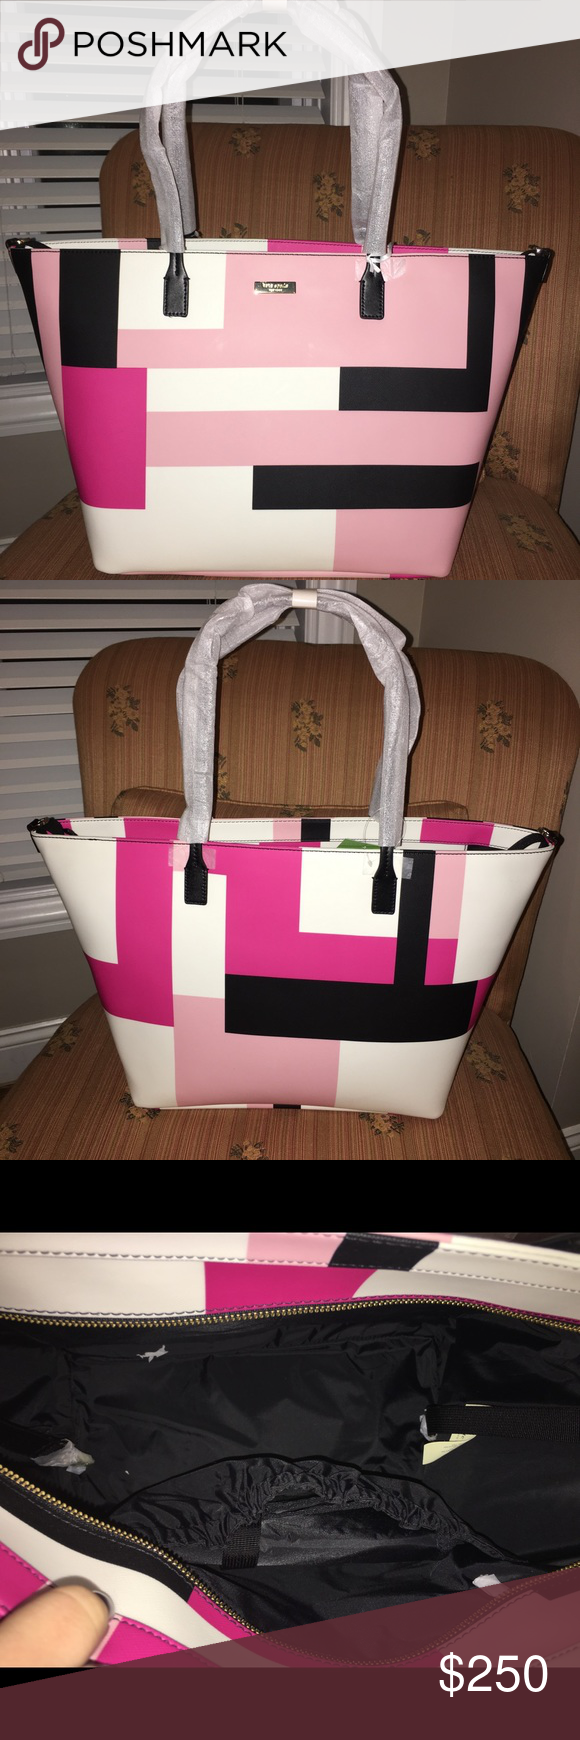 Kate Spade Diaper Bag/ Purse I bought this online and it is too big for my liking and can't return it. I bought it as a purse I had no idea it was a Diaper Bag. Comes with a changing table liner too. All the paper still on and inside, I took it out for the picture!! kate spade Bags Shoulder Bags